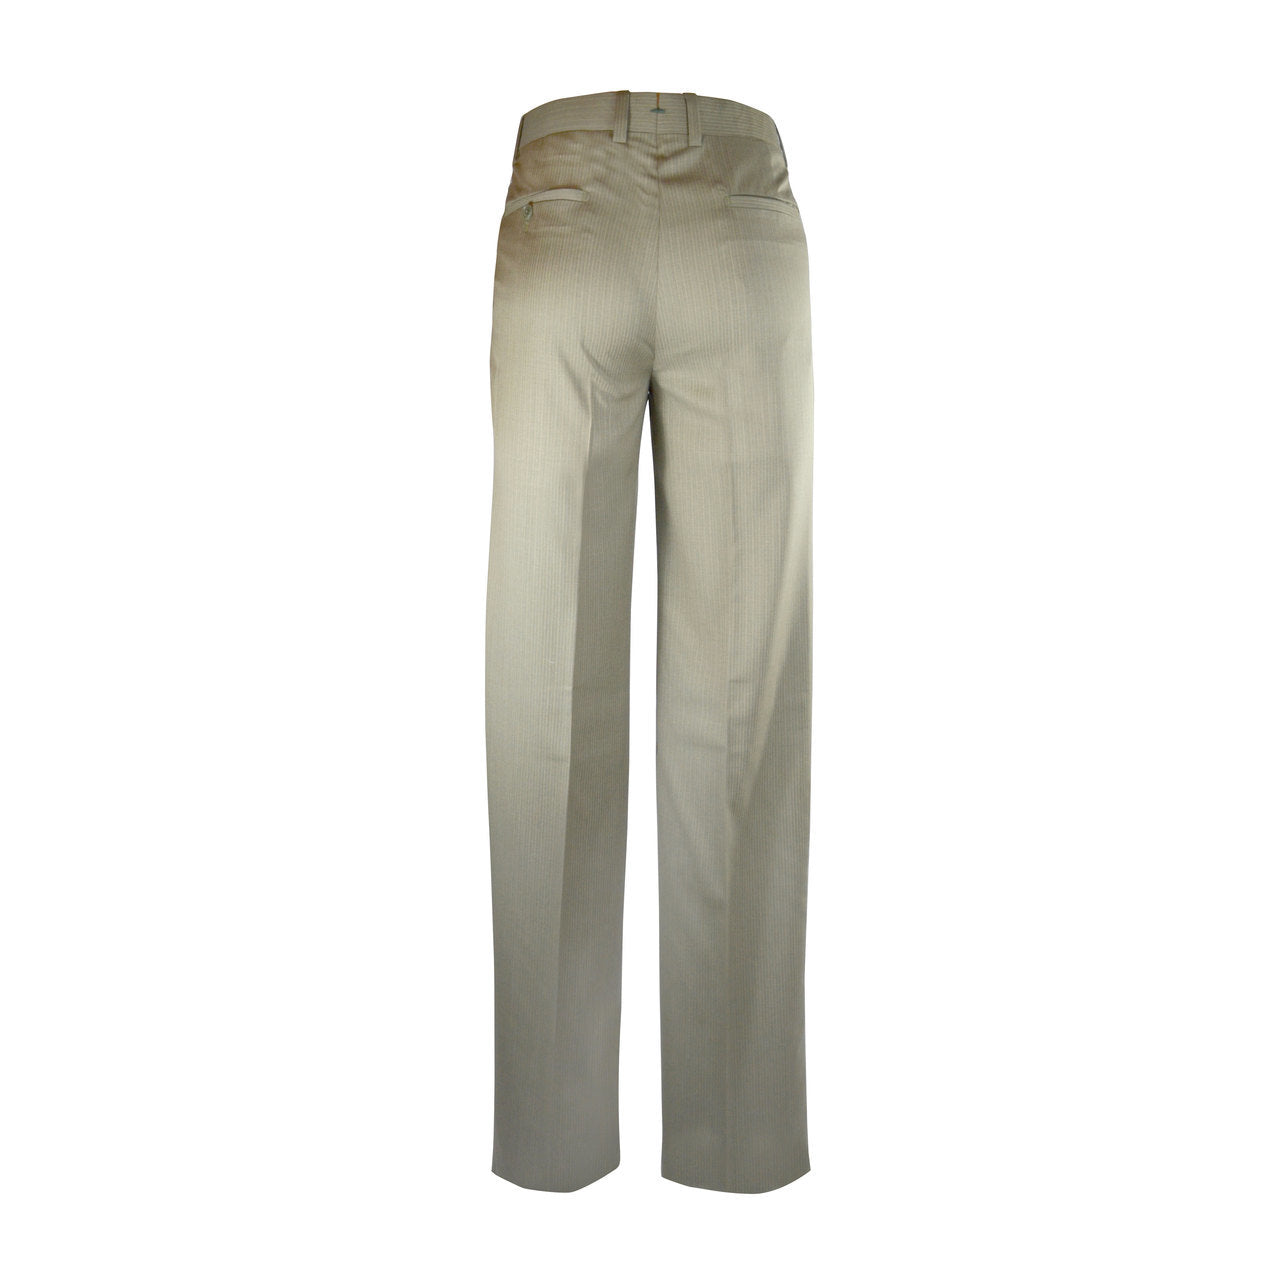 Newport Pleated Front Trouser - Tan with Peach Stripe